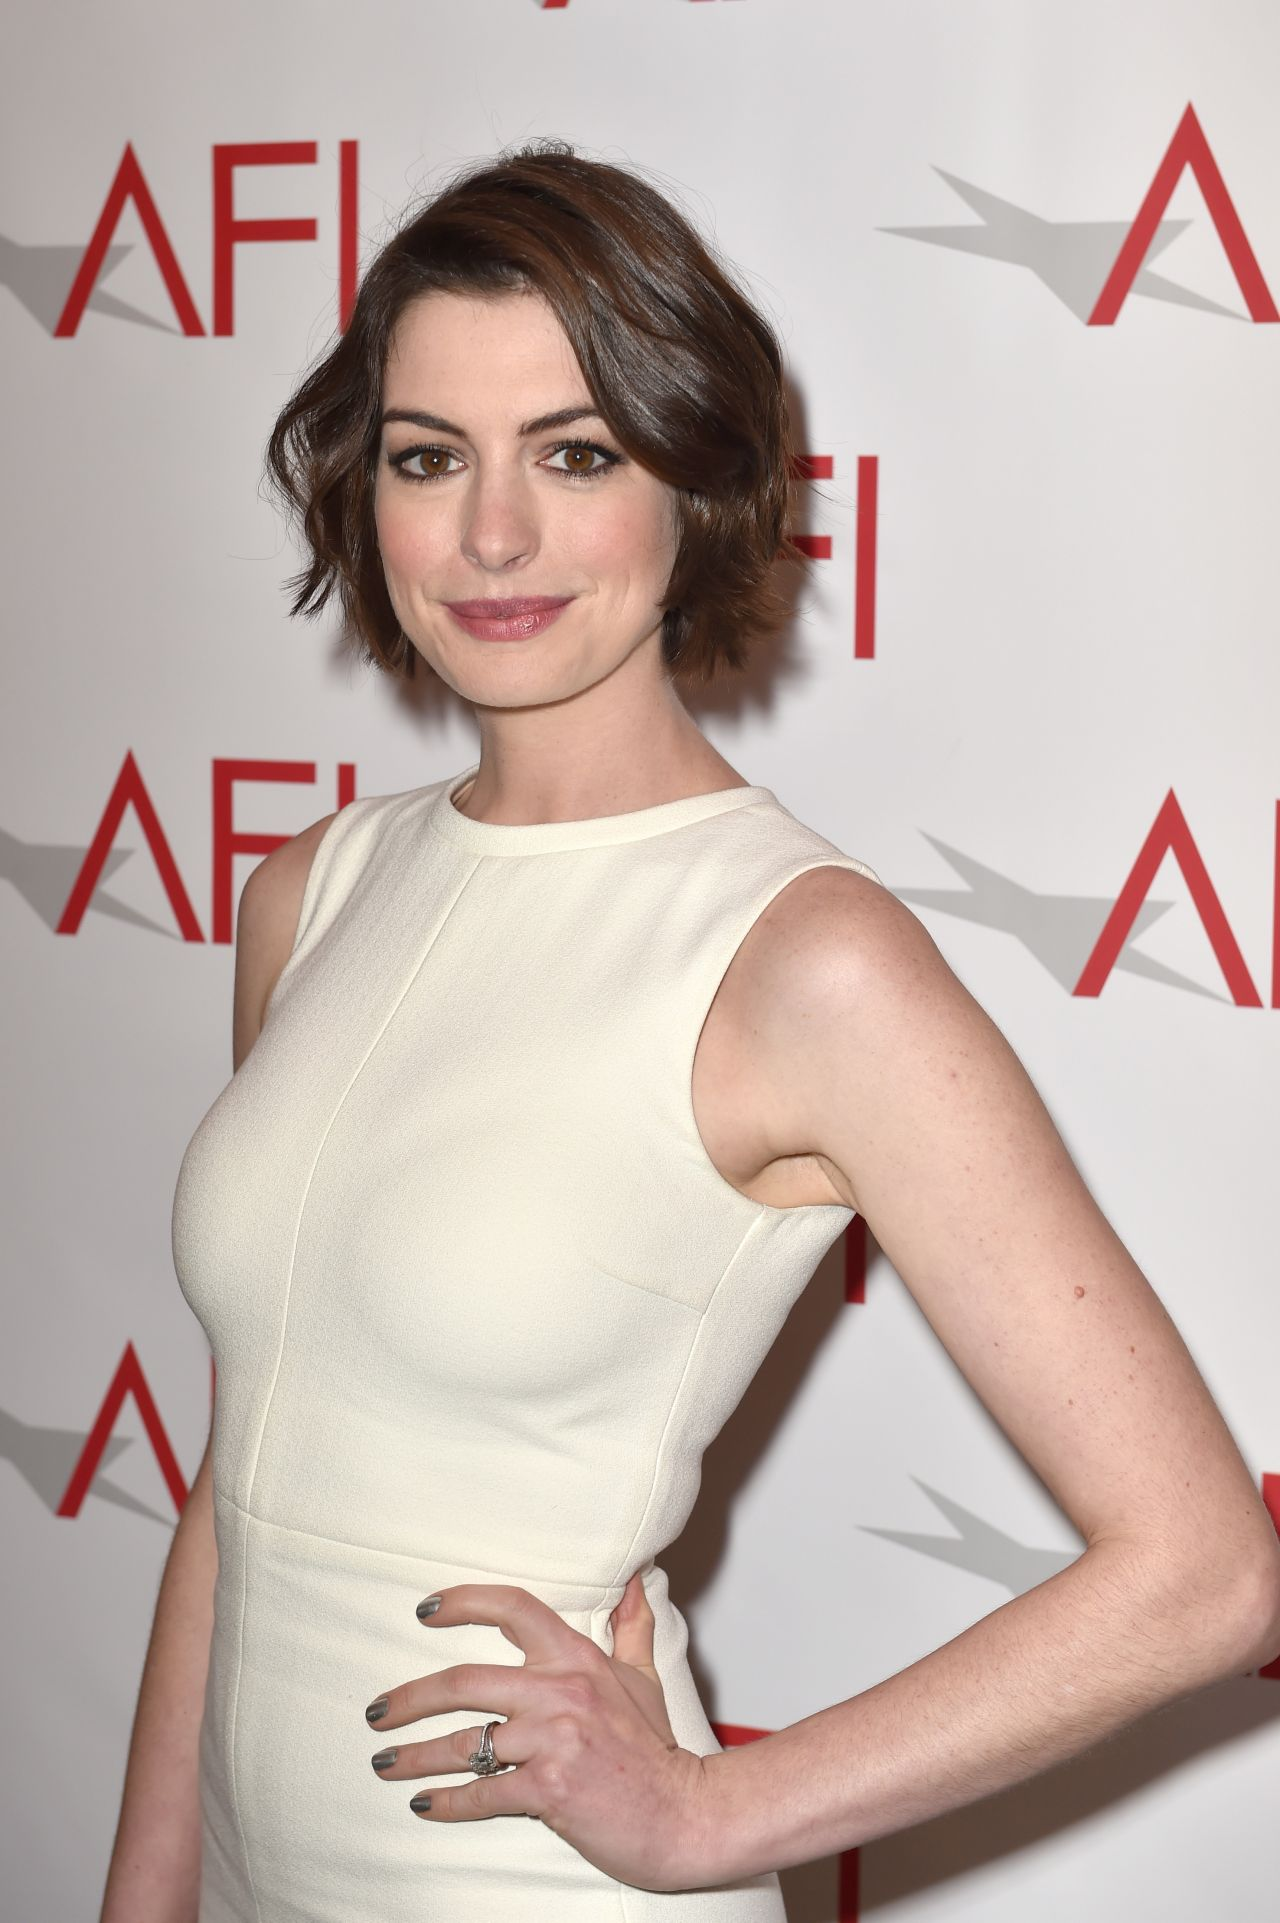 Anne Hathaway | Disney Wiki | FANDOM powered by Wikia энн хэтэуэй википедия